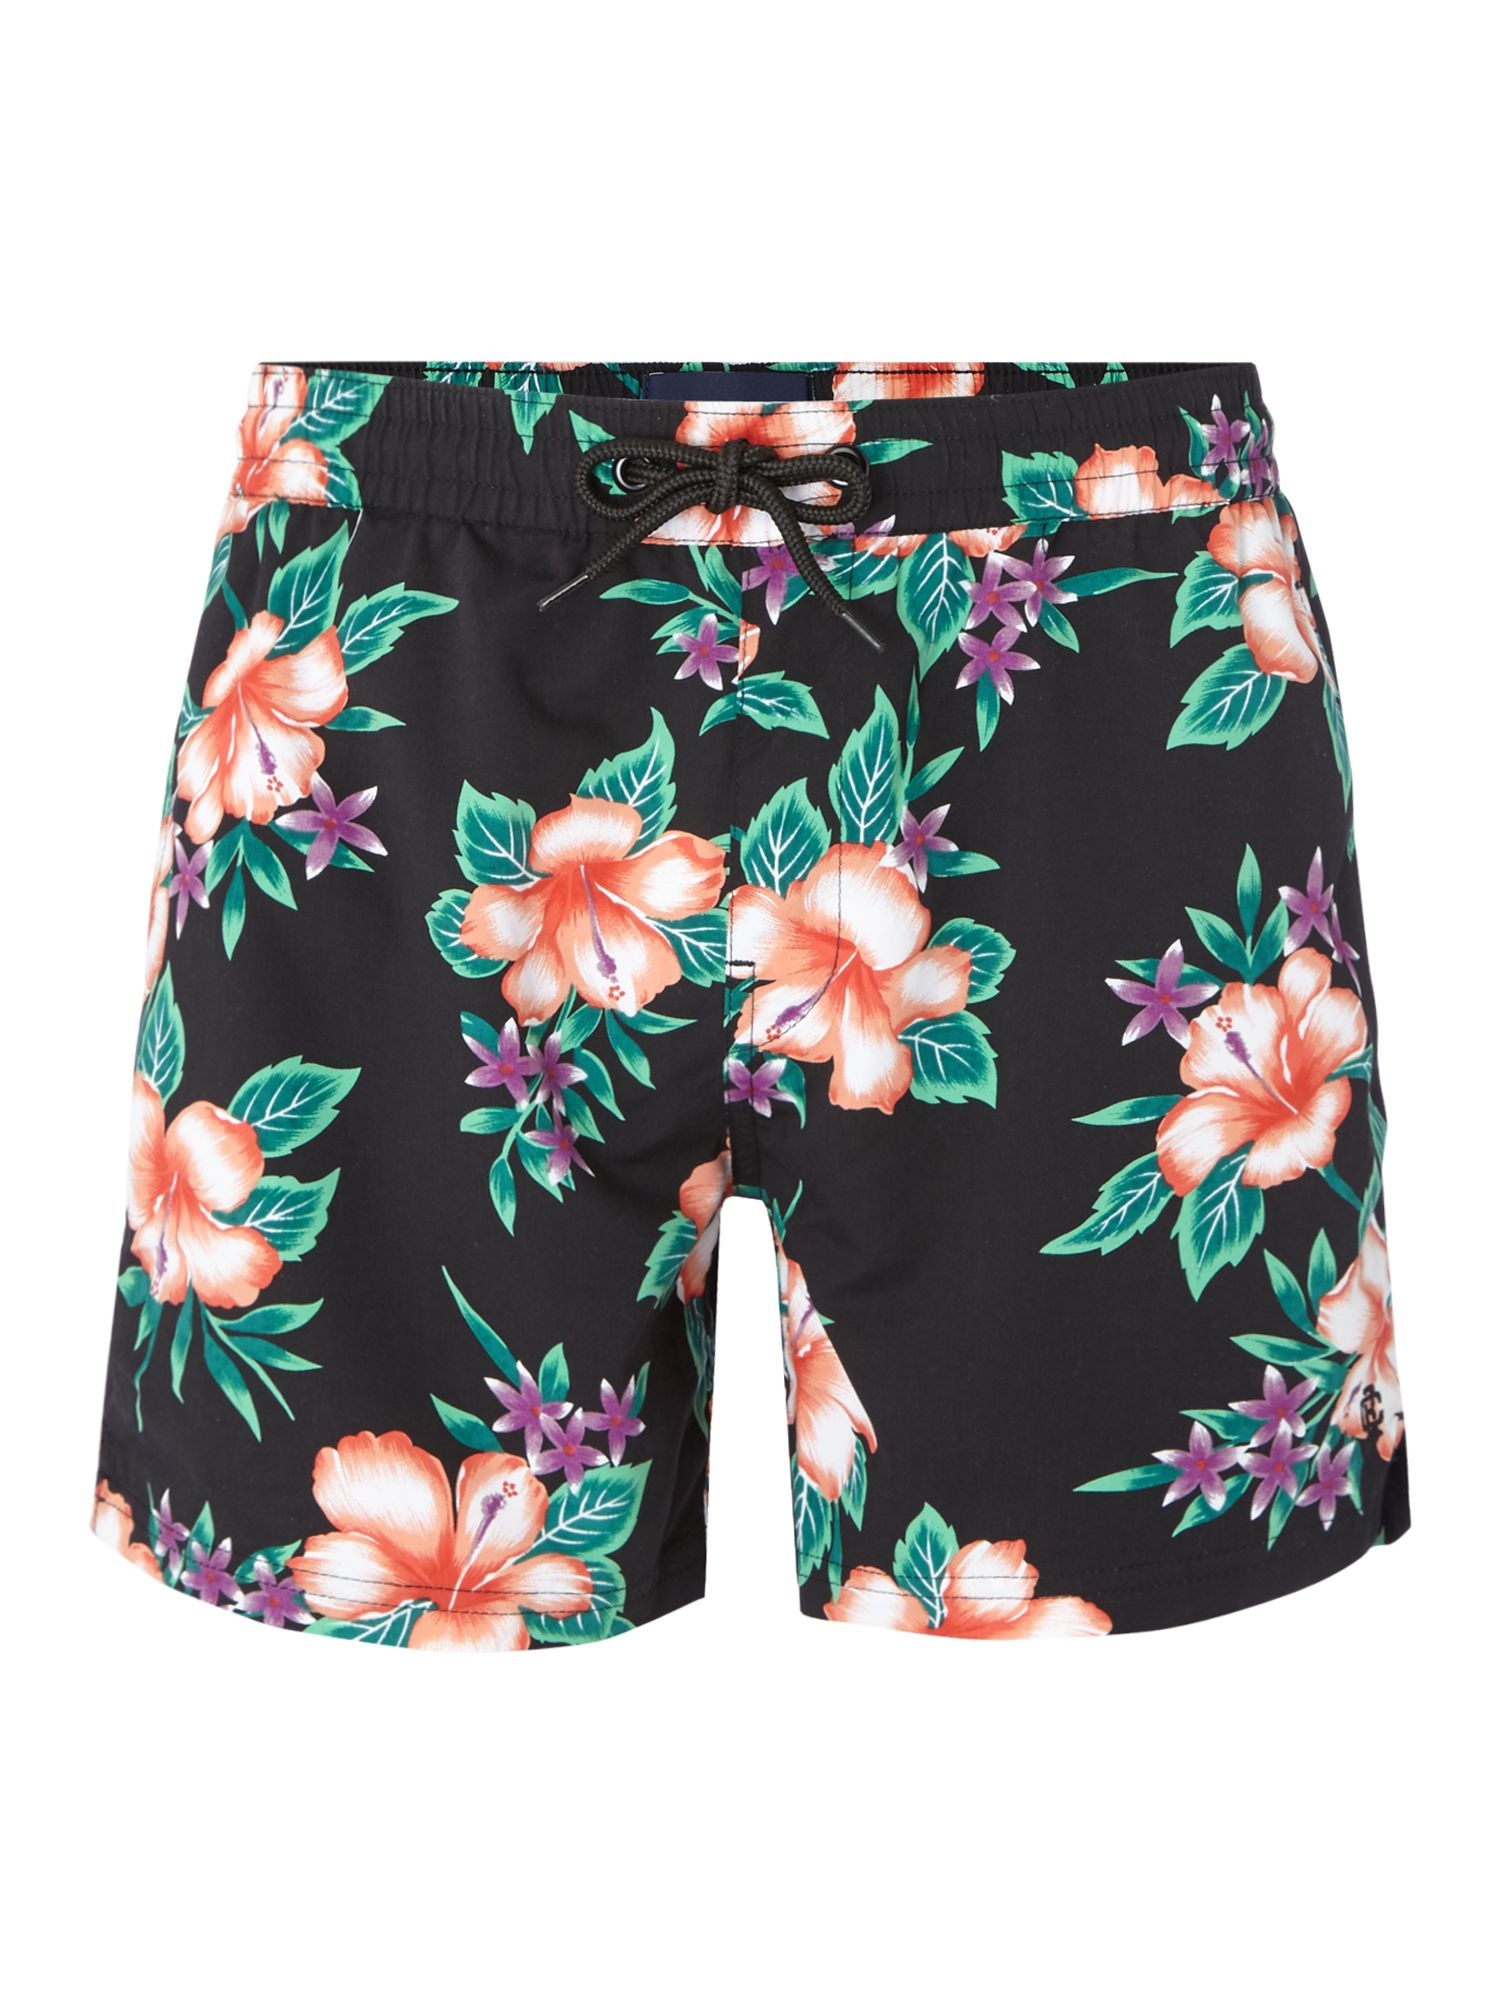 Men's Criminal Short Spec Swim Short With Cuban Floral Print, Black